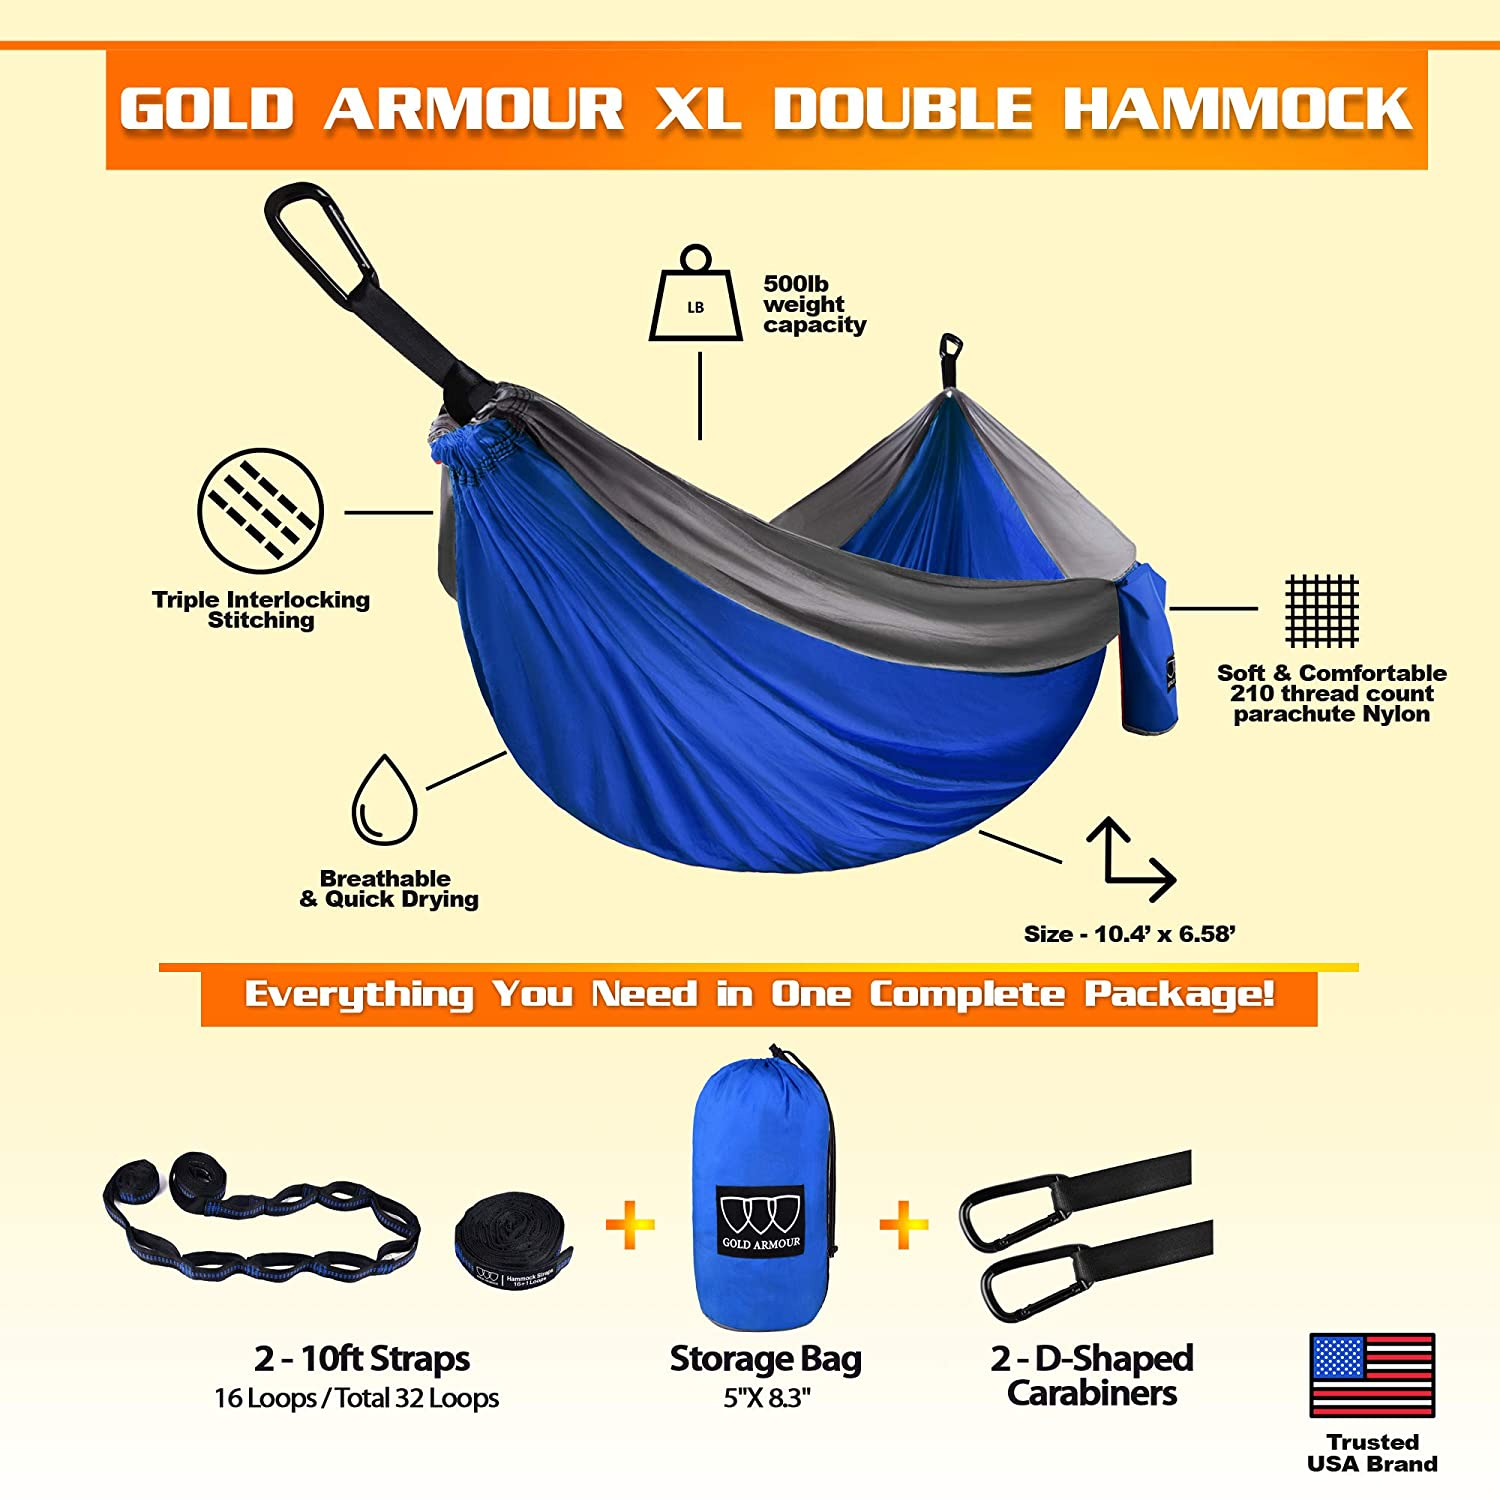 Gold Armour Camping Hammock – Extra Large Double Parachute Hammock 2 Tree Straps 16 Loops,10 ft Included USA Brand Lightweight Nylon Mens Womens Kids, Camping Accessories Gear